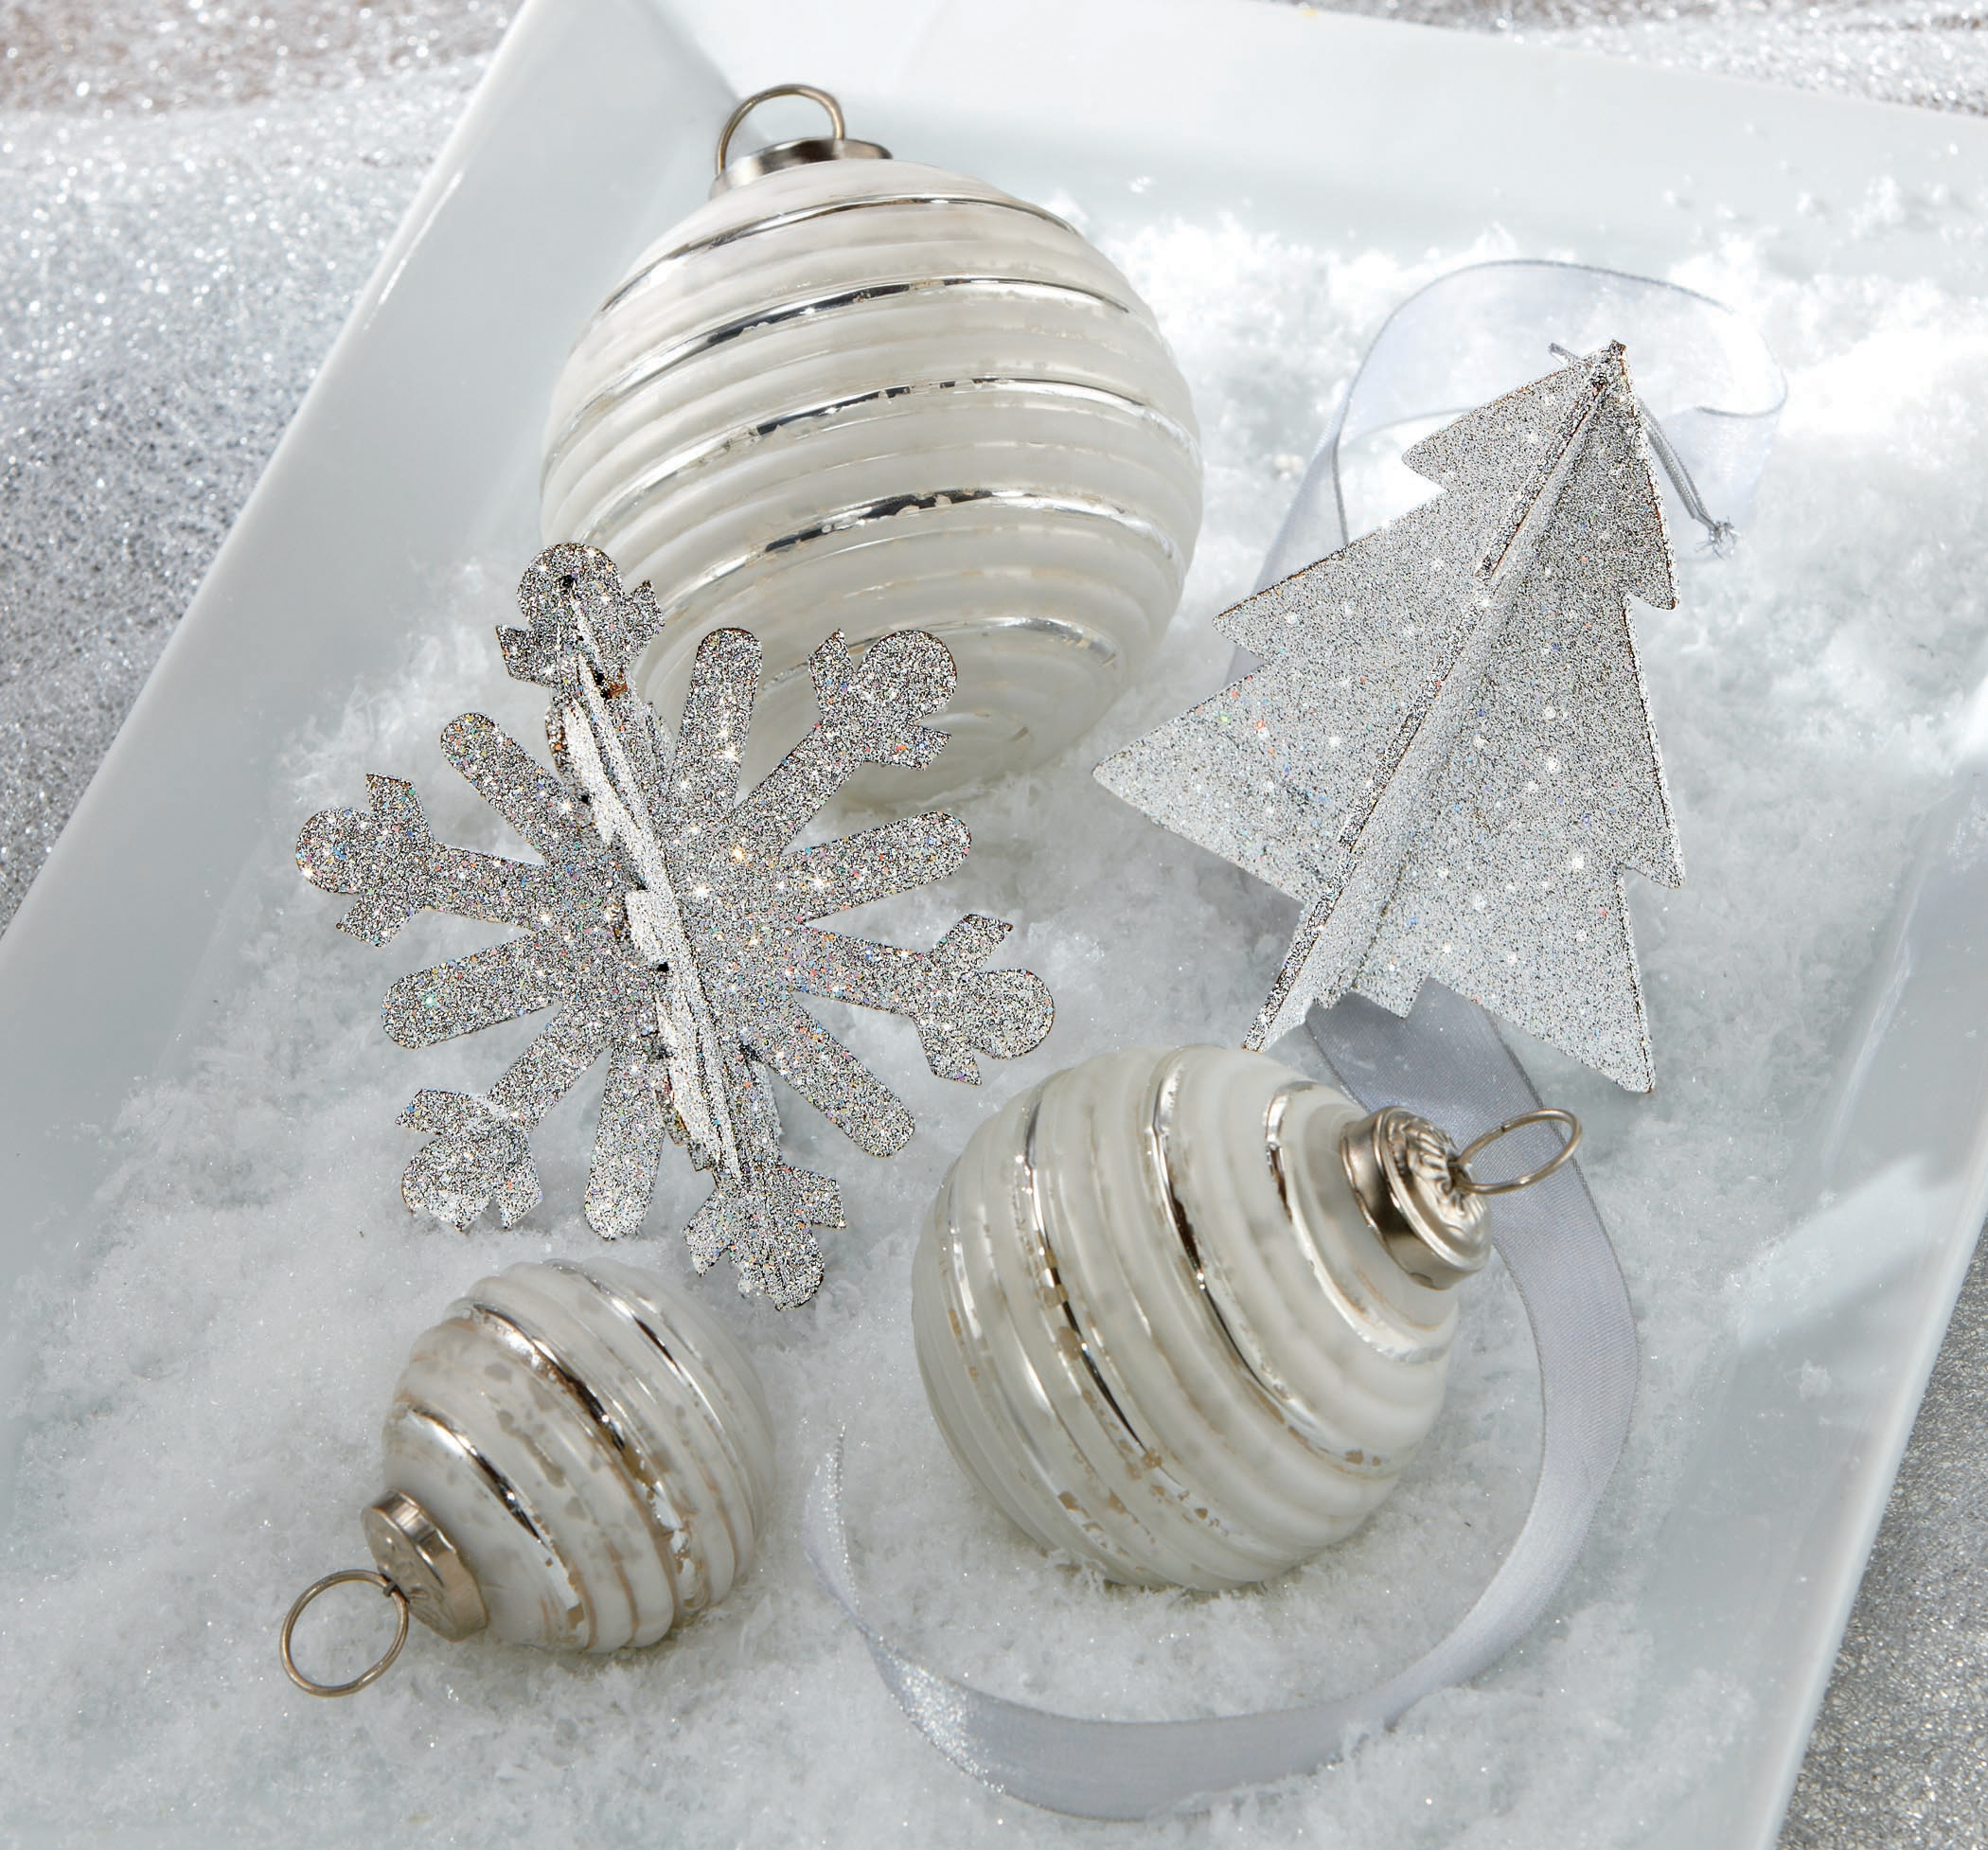 classic Christmas tree ornaments elegant white glass with shiny